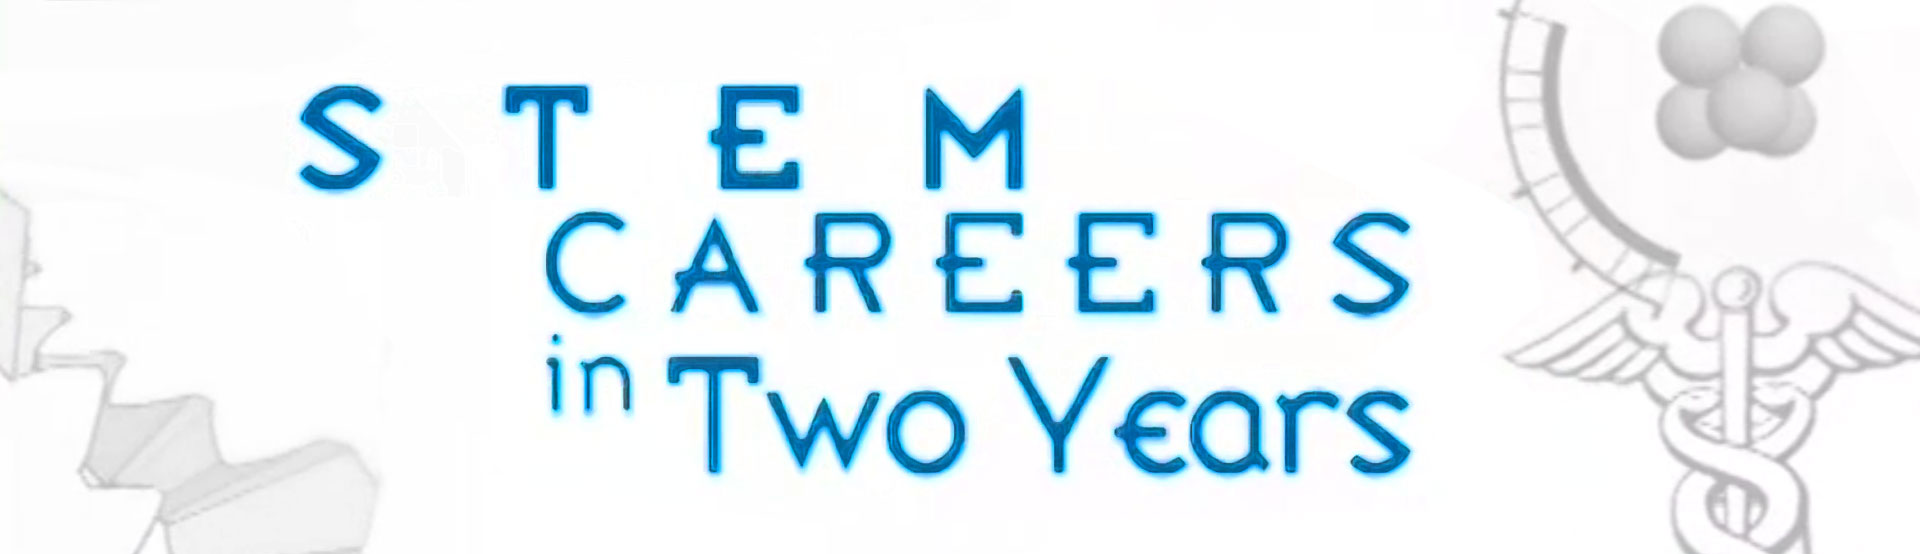 STEM Careers in Two Years